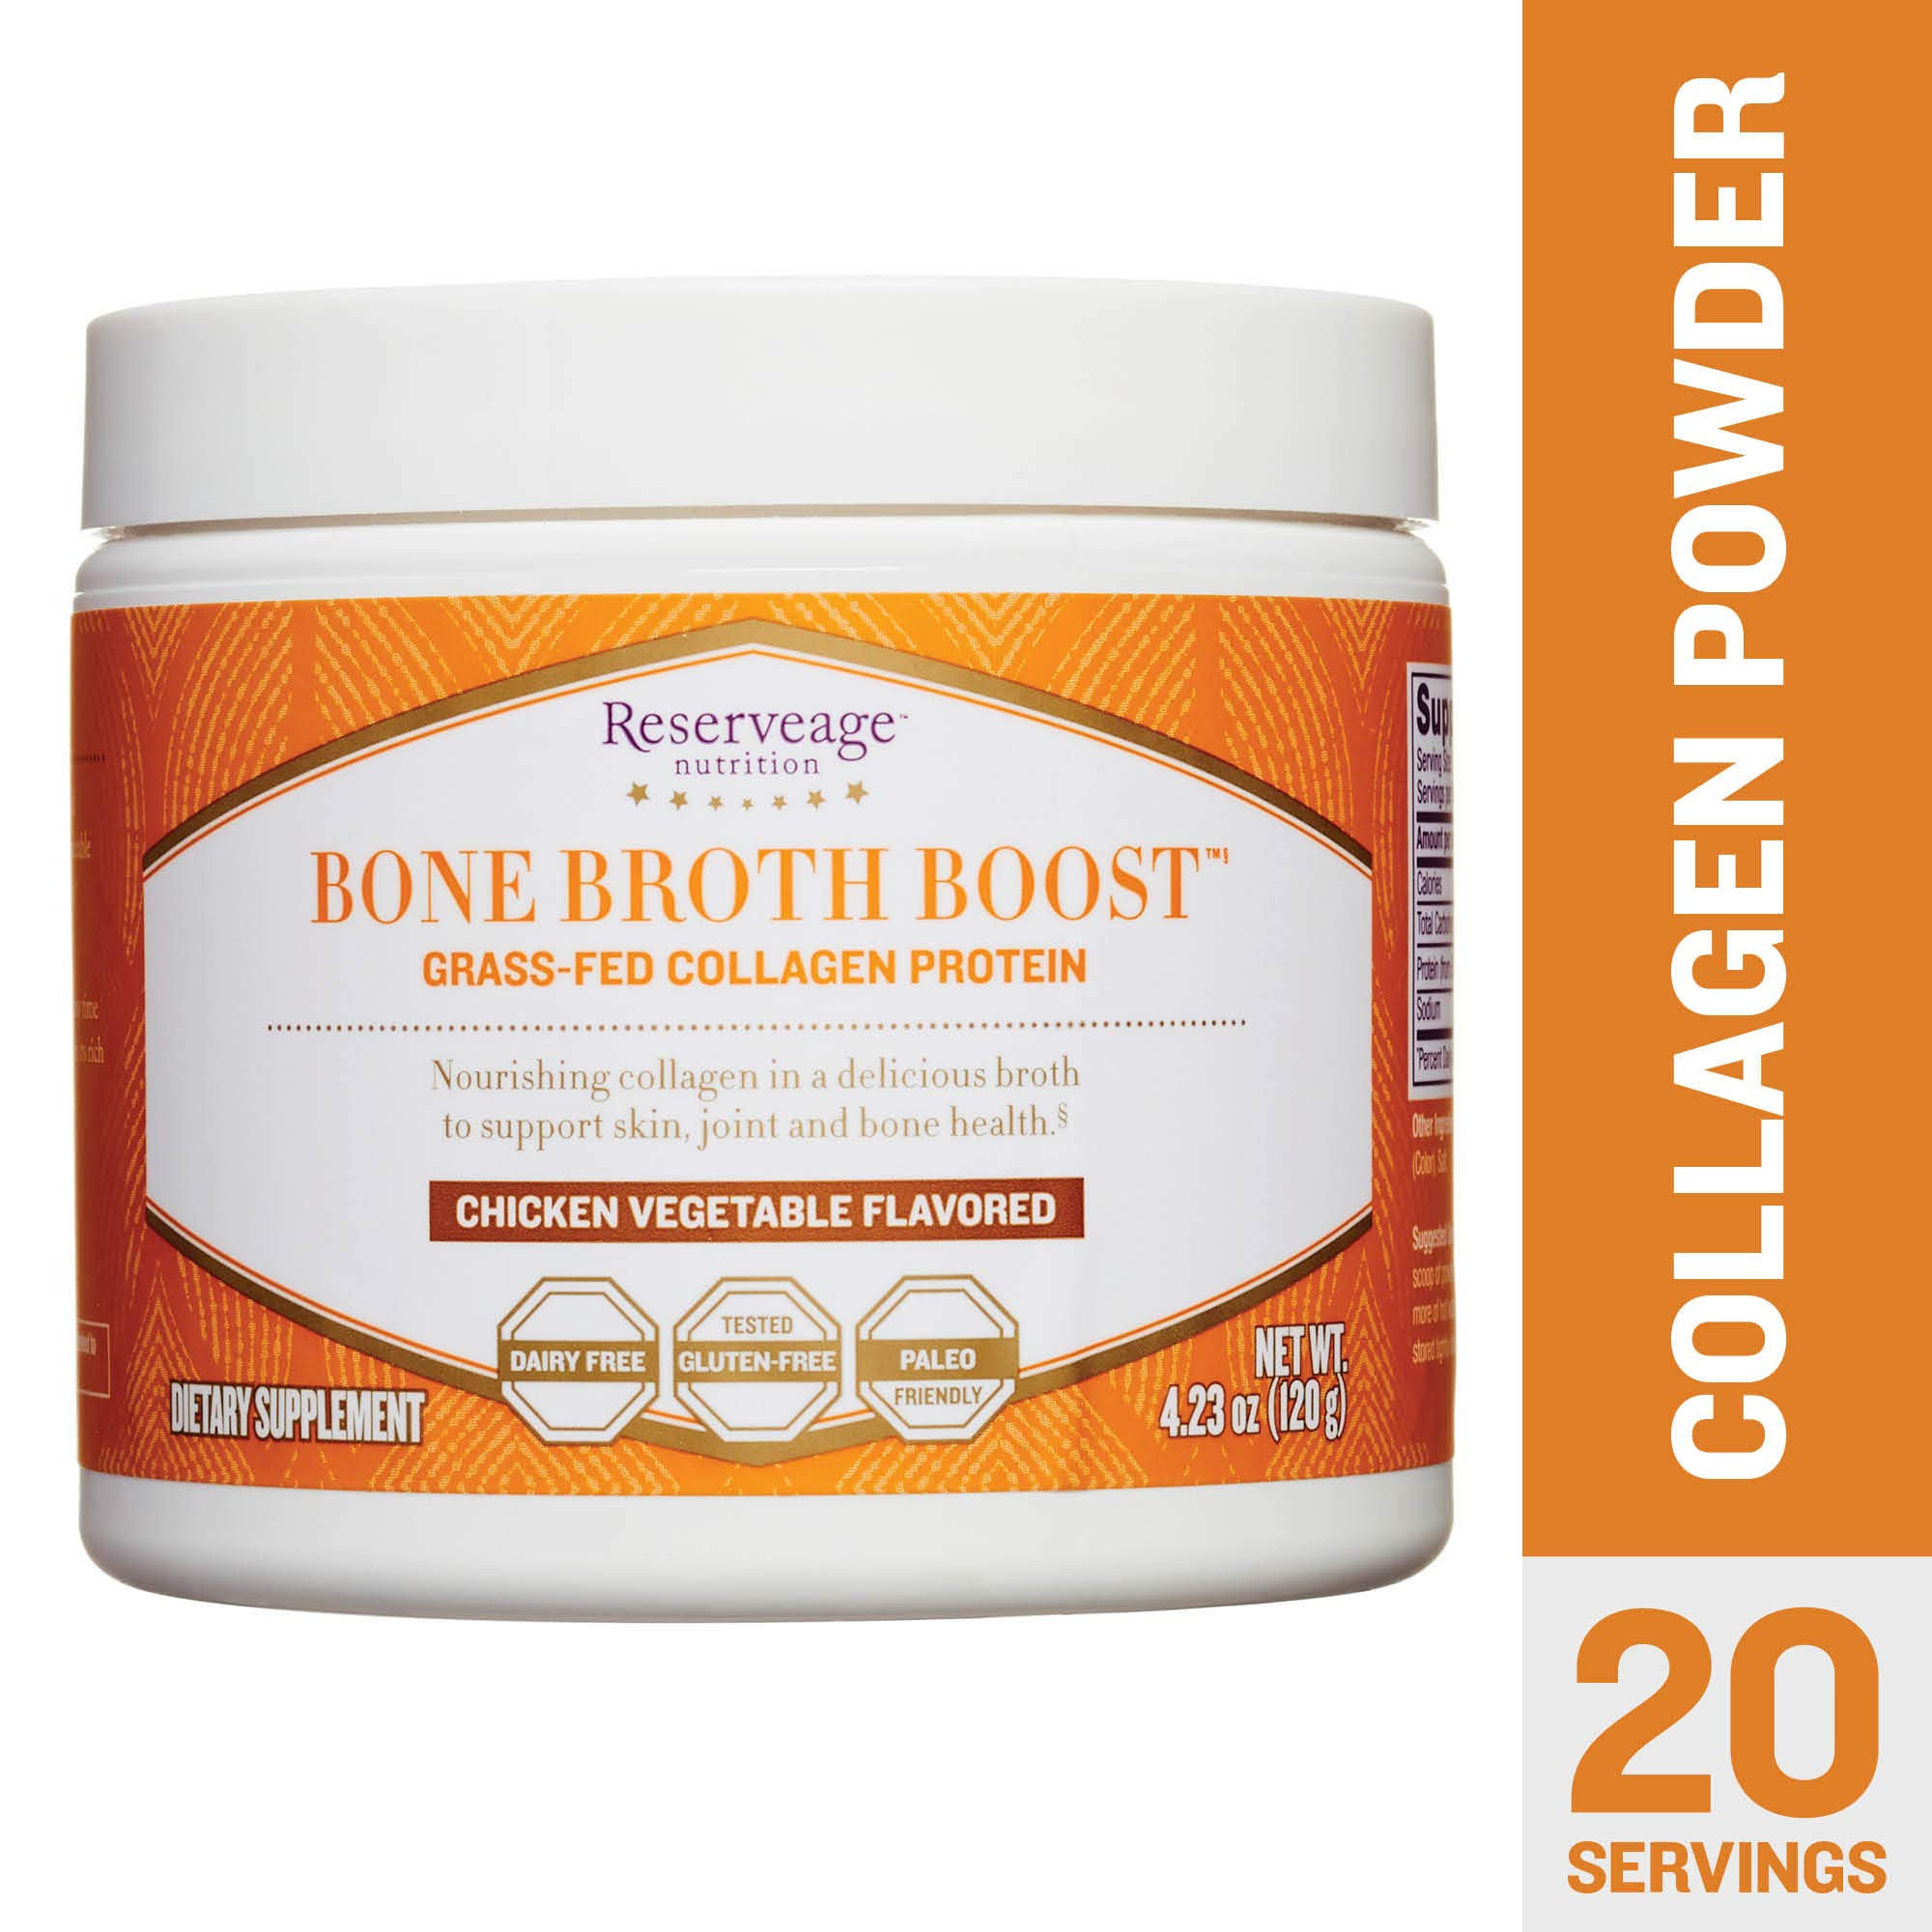 Reserveage - Bone Broth Boost Powder, Grass-Fed Collagen Protein to Support for Strong Joints, Bones, and Youthful Skin, Dairy Free, Gluten Free, Paleo, Chicken Vegetable, 4.23 oz (20 Servings) by Reserveage Nutrition